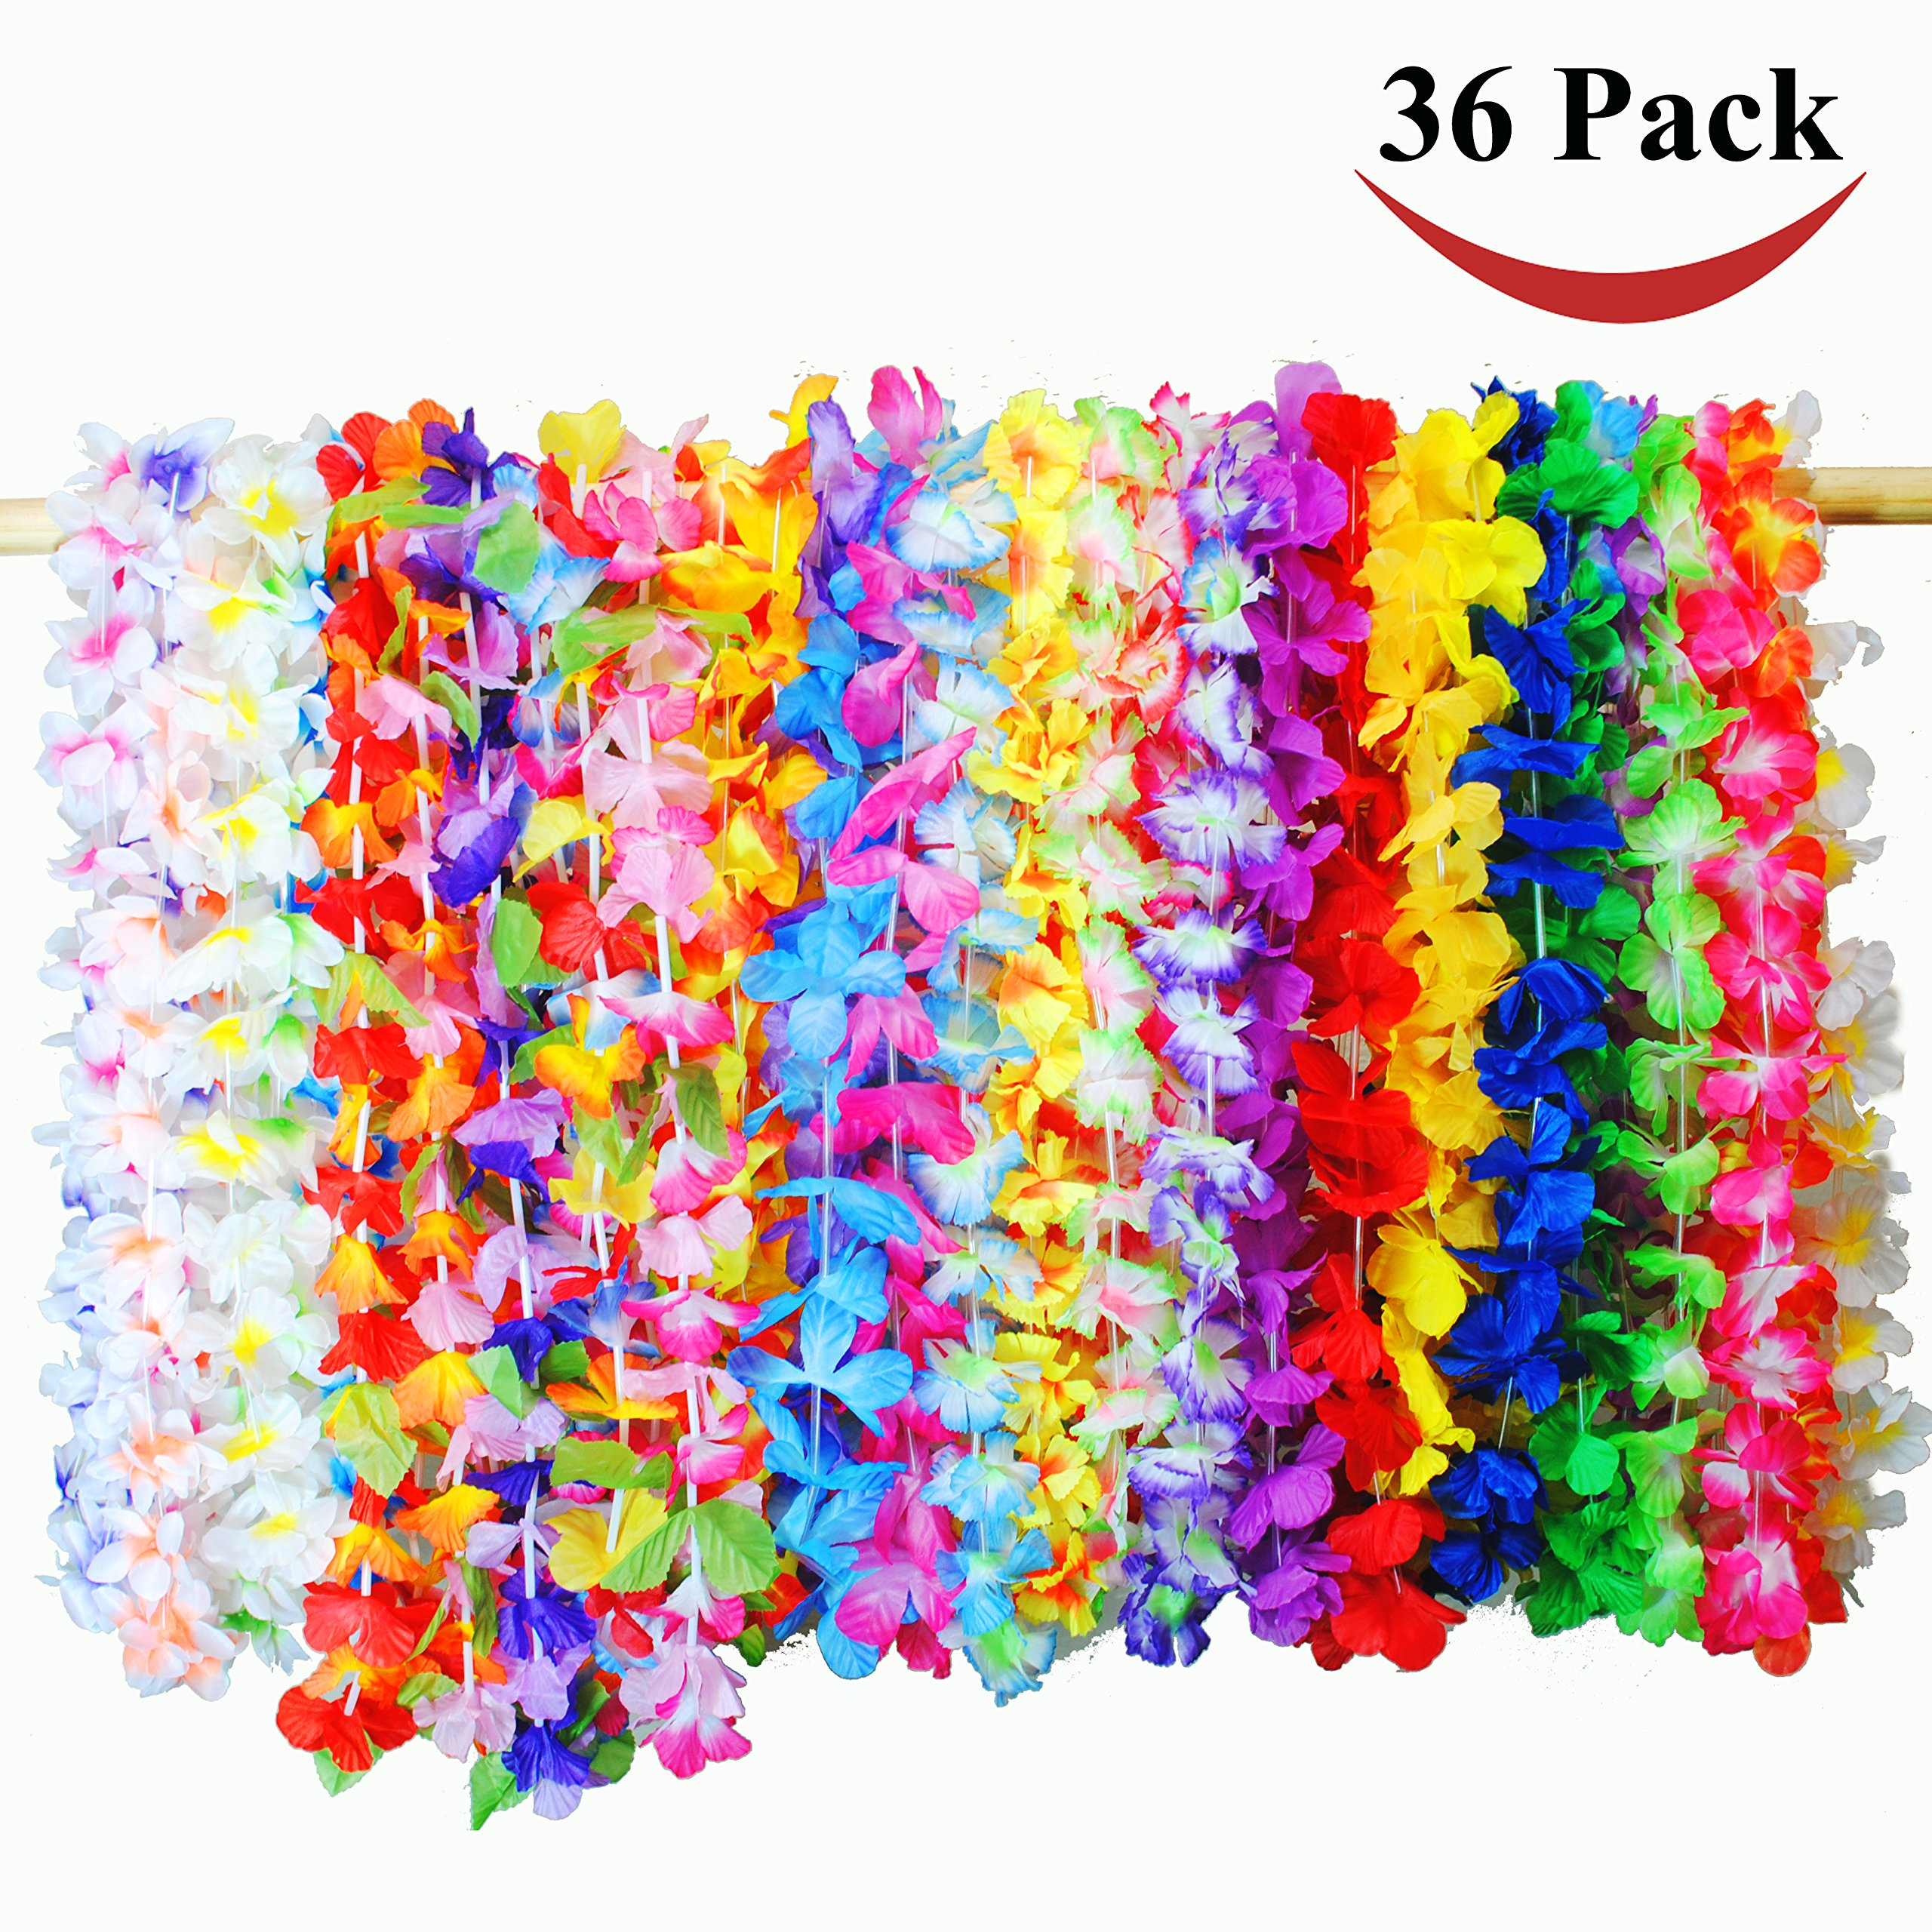 Joyin Toy 36 Counts Tropical Hawaiian Luau Flower Lei Party Favors (3 Dozen) by Joyin Toy